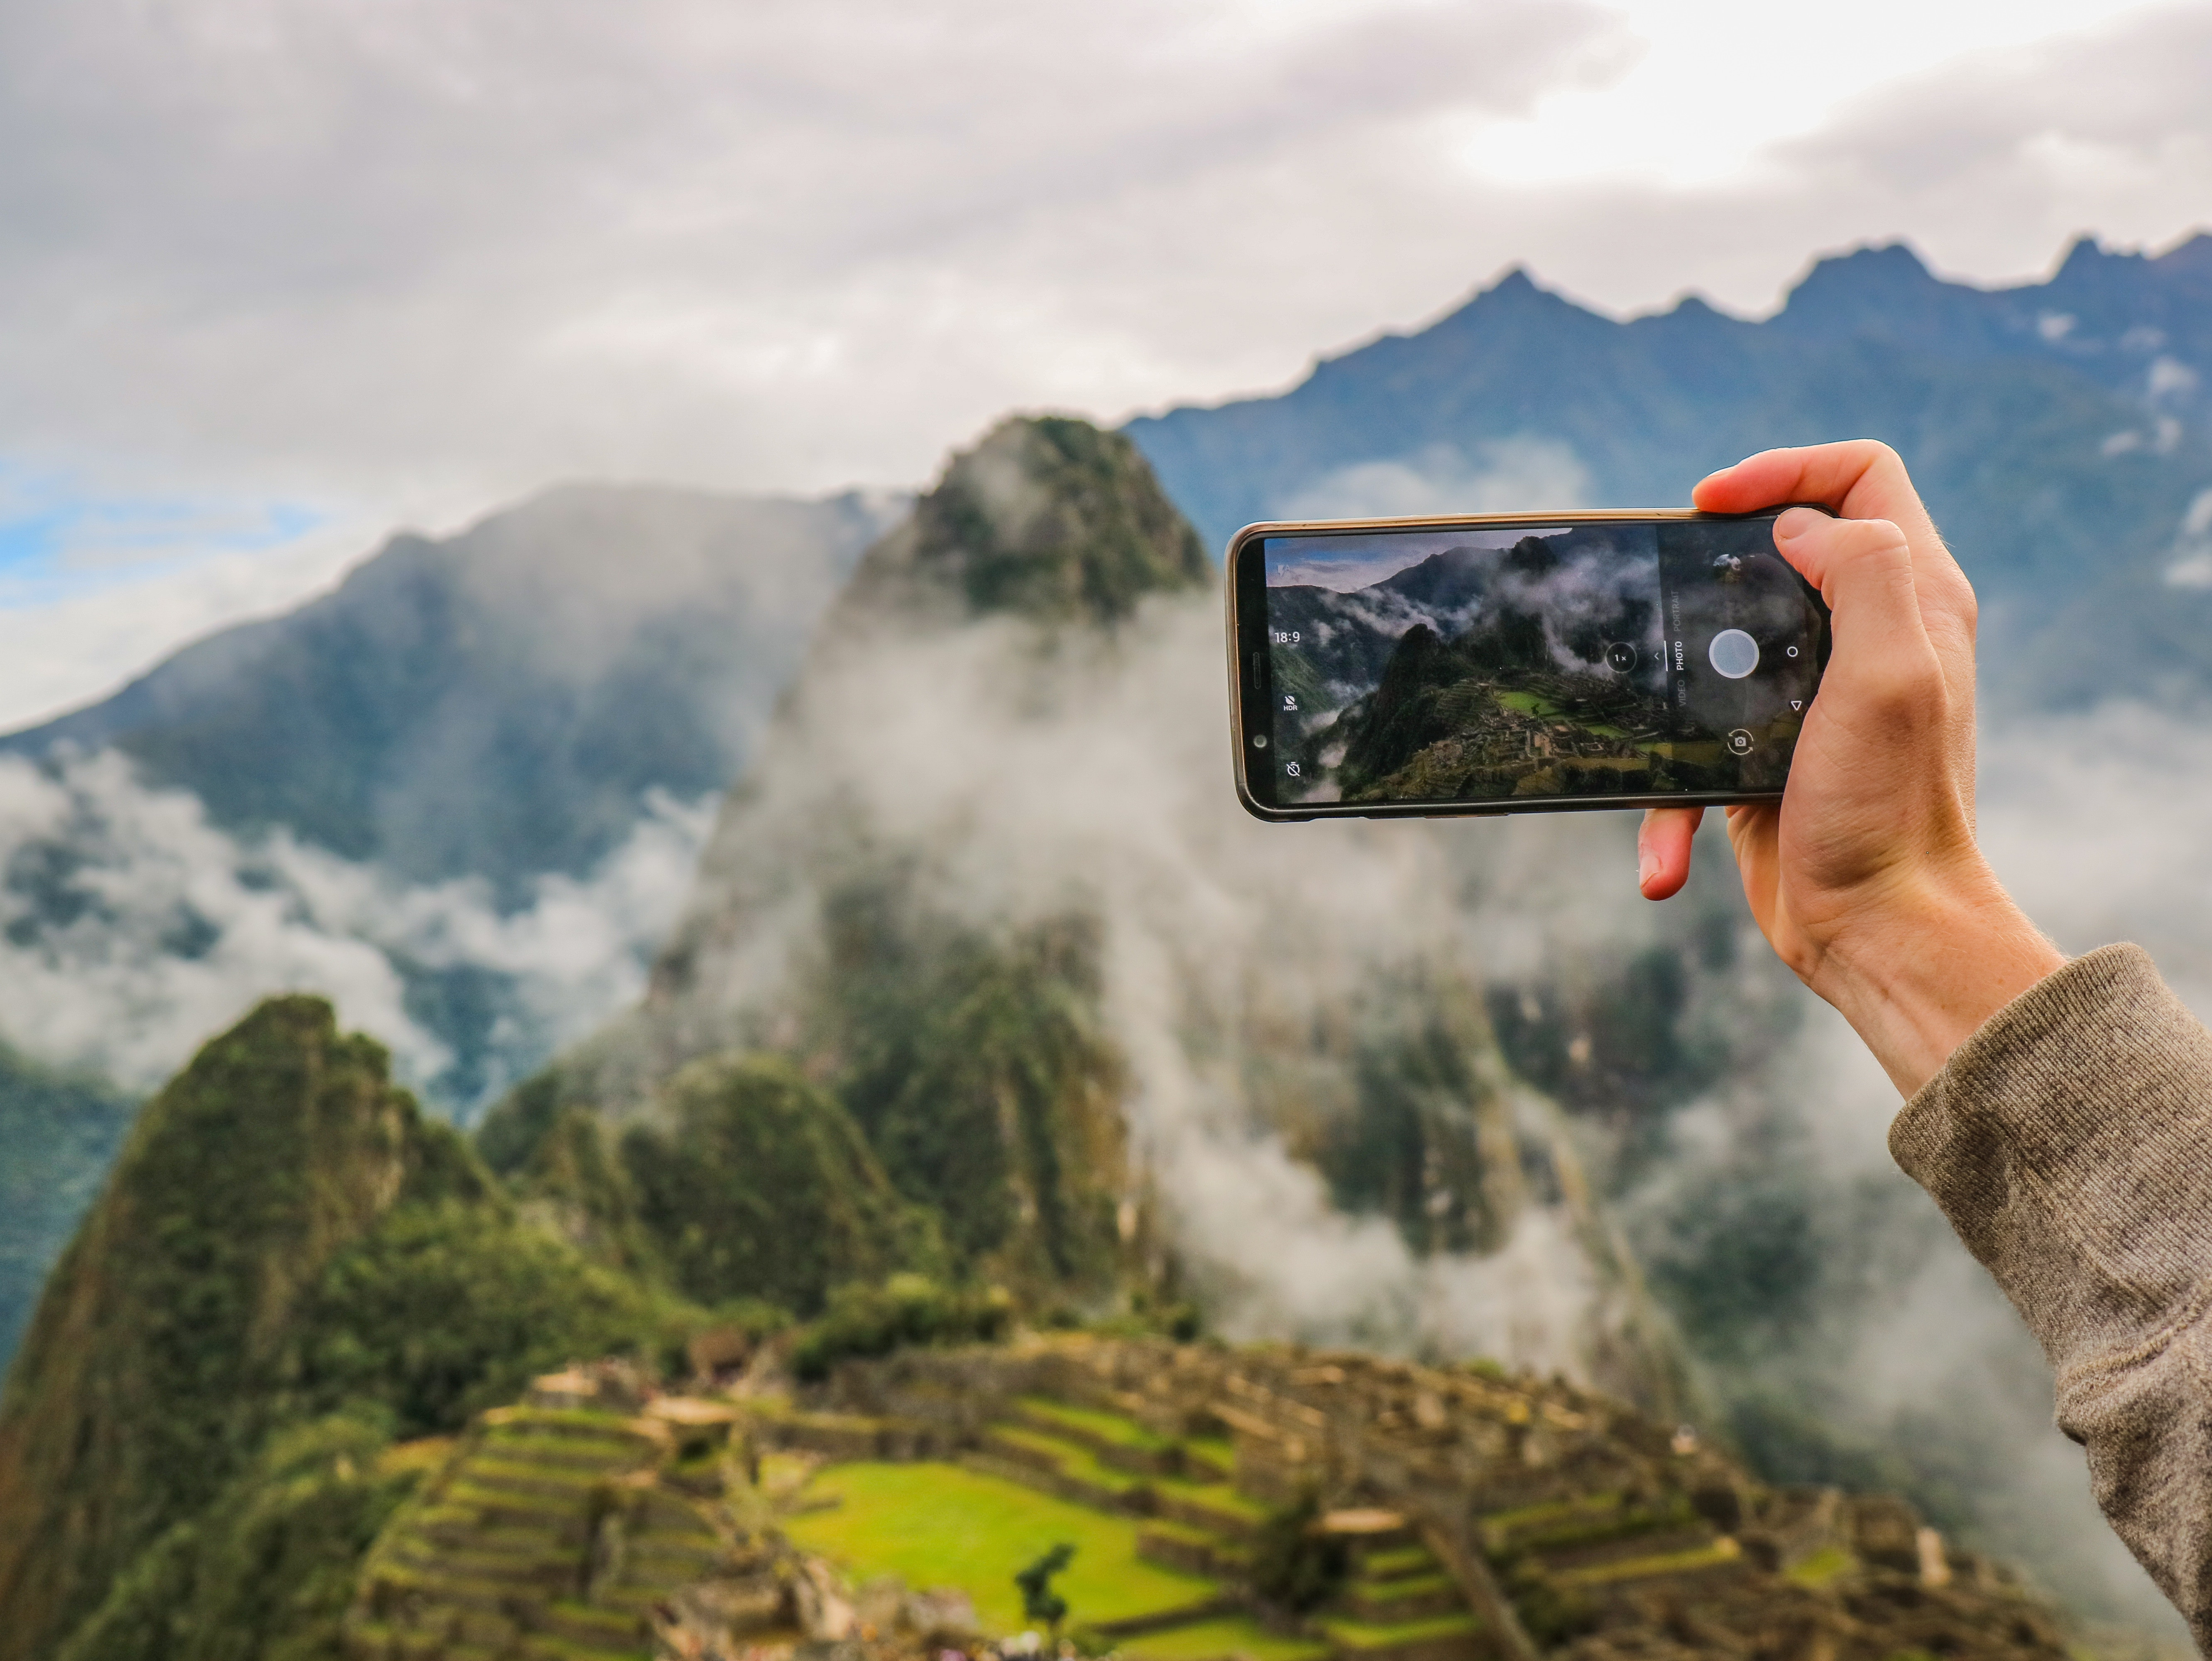 15 of the Best Instagram Photos of Machu Picchu and Treks